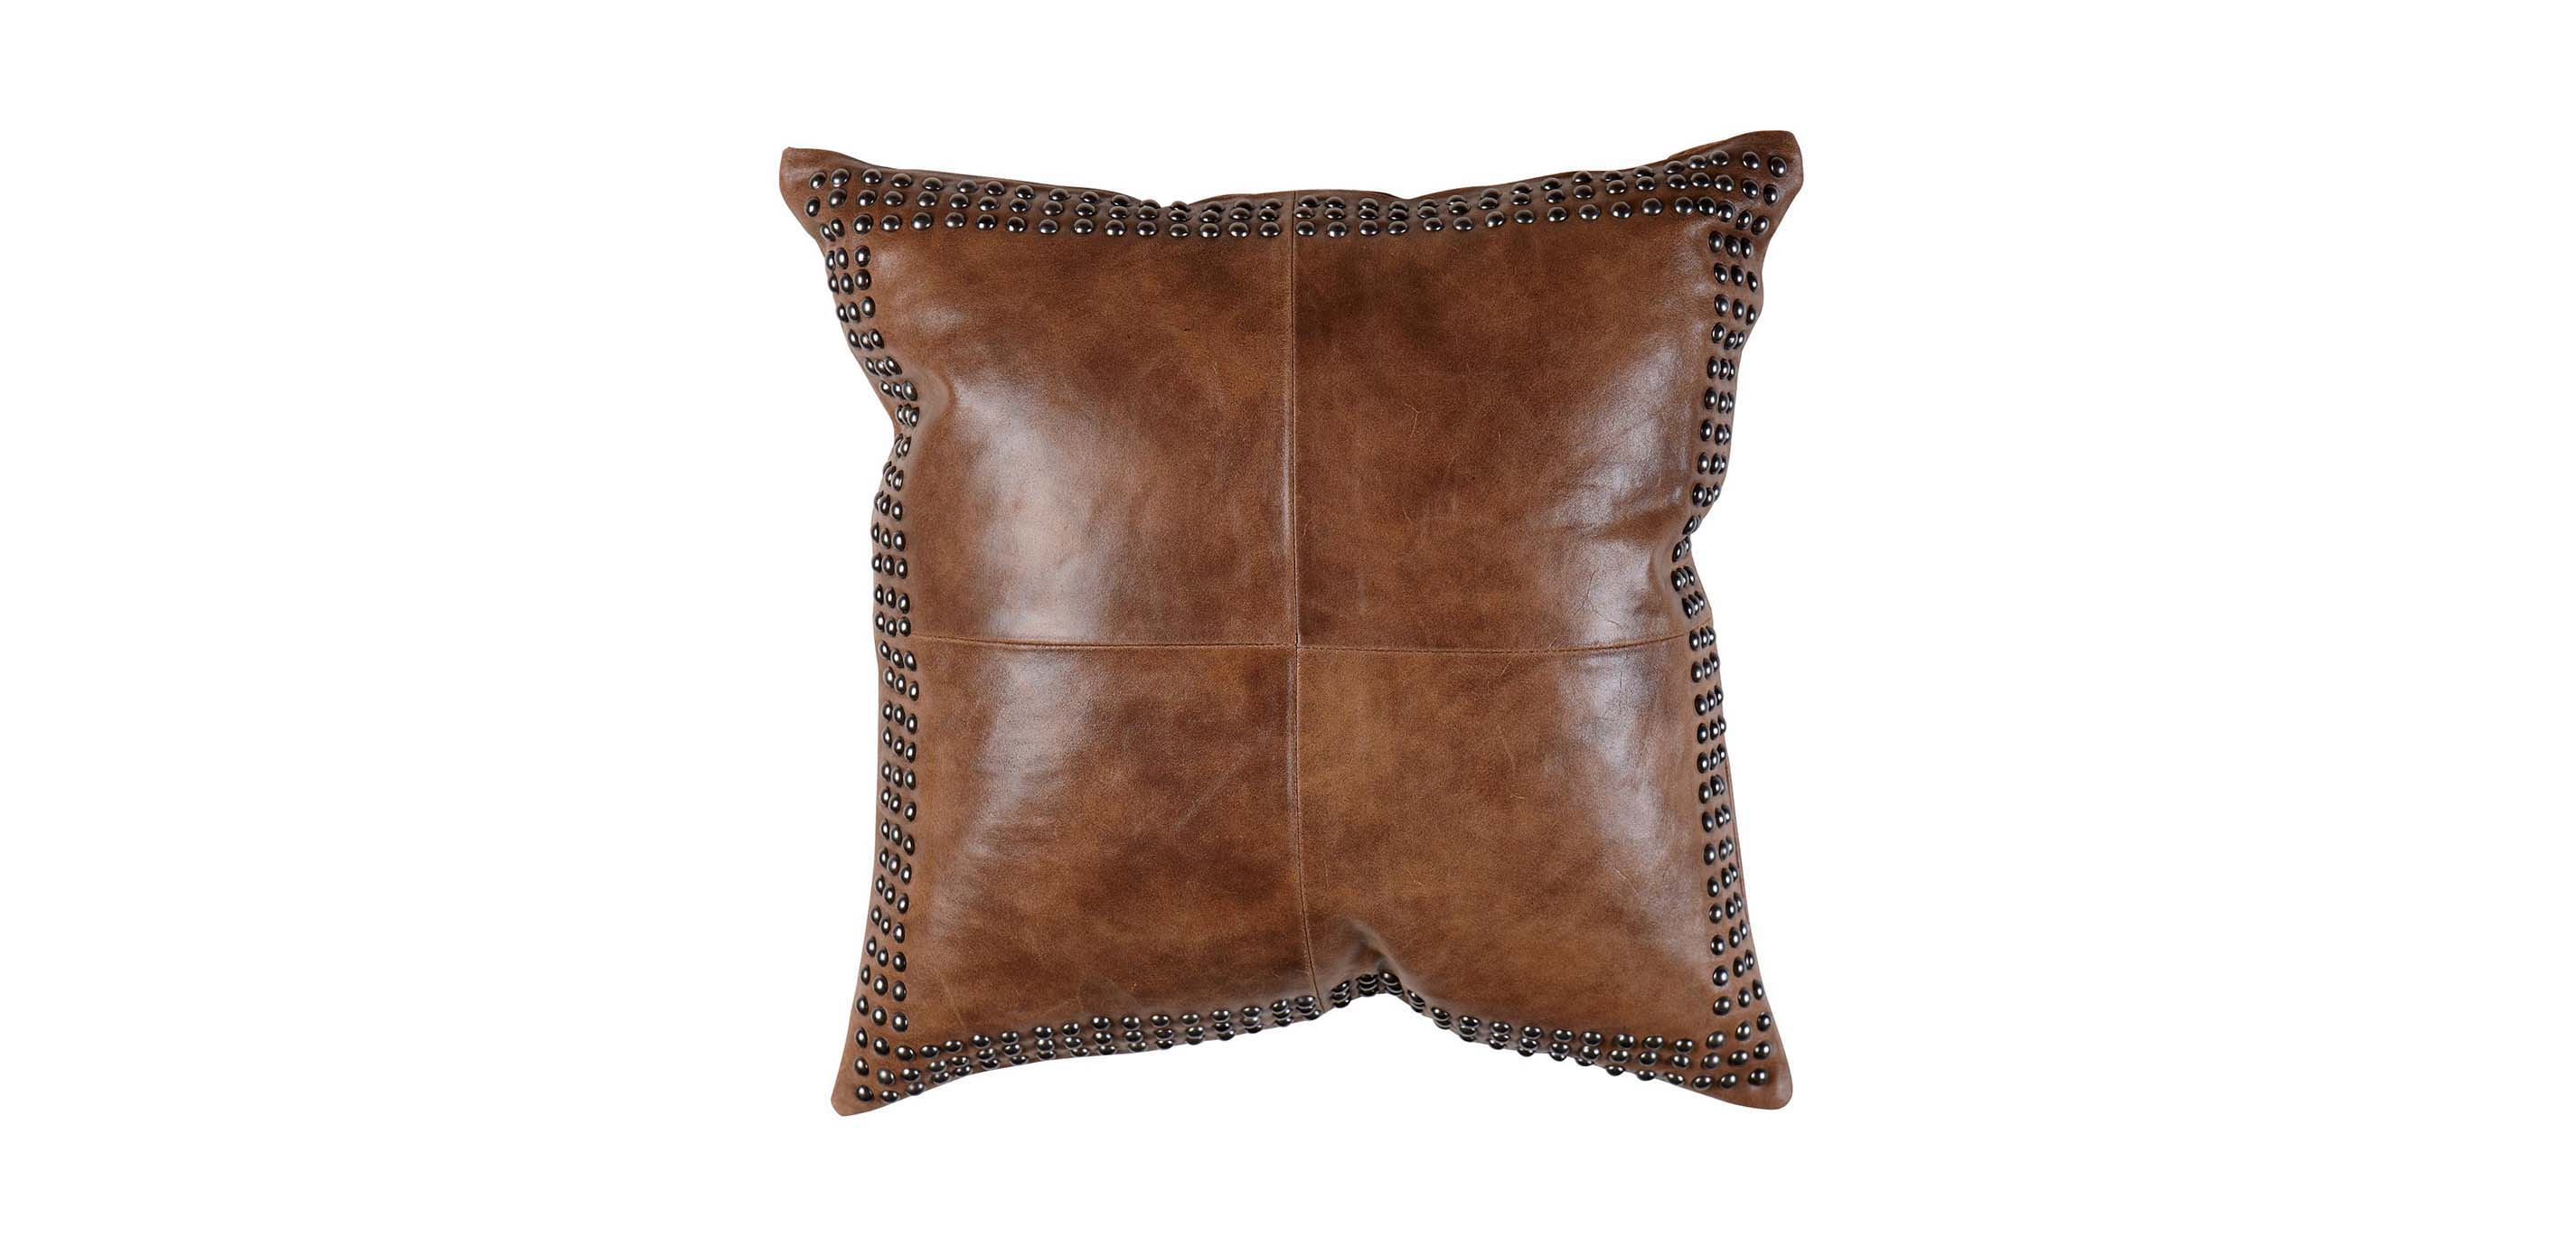 Leather Floor Pillows Cushions : Brown Worn Leather Pillow Pillows